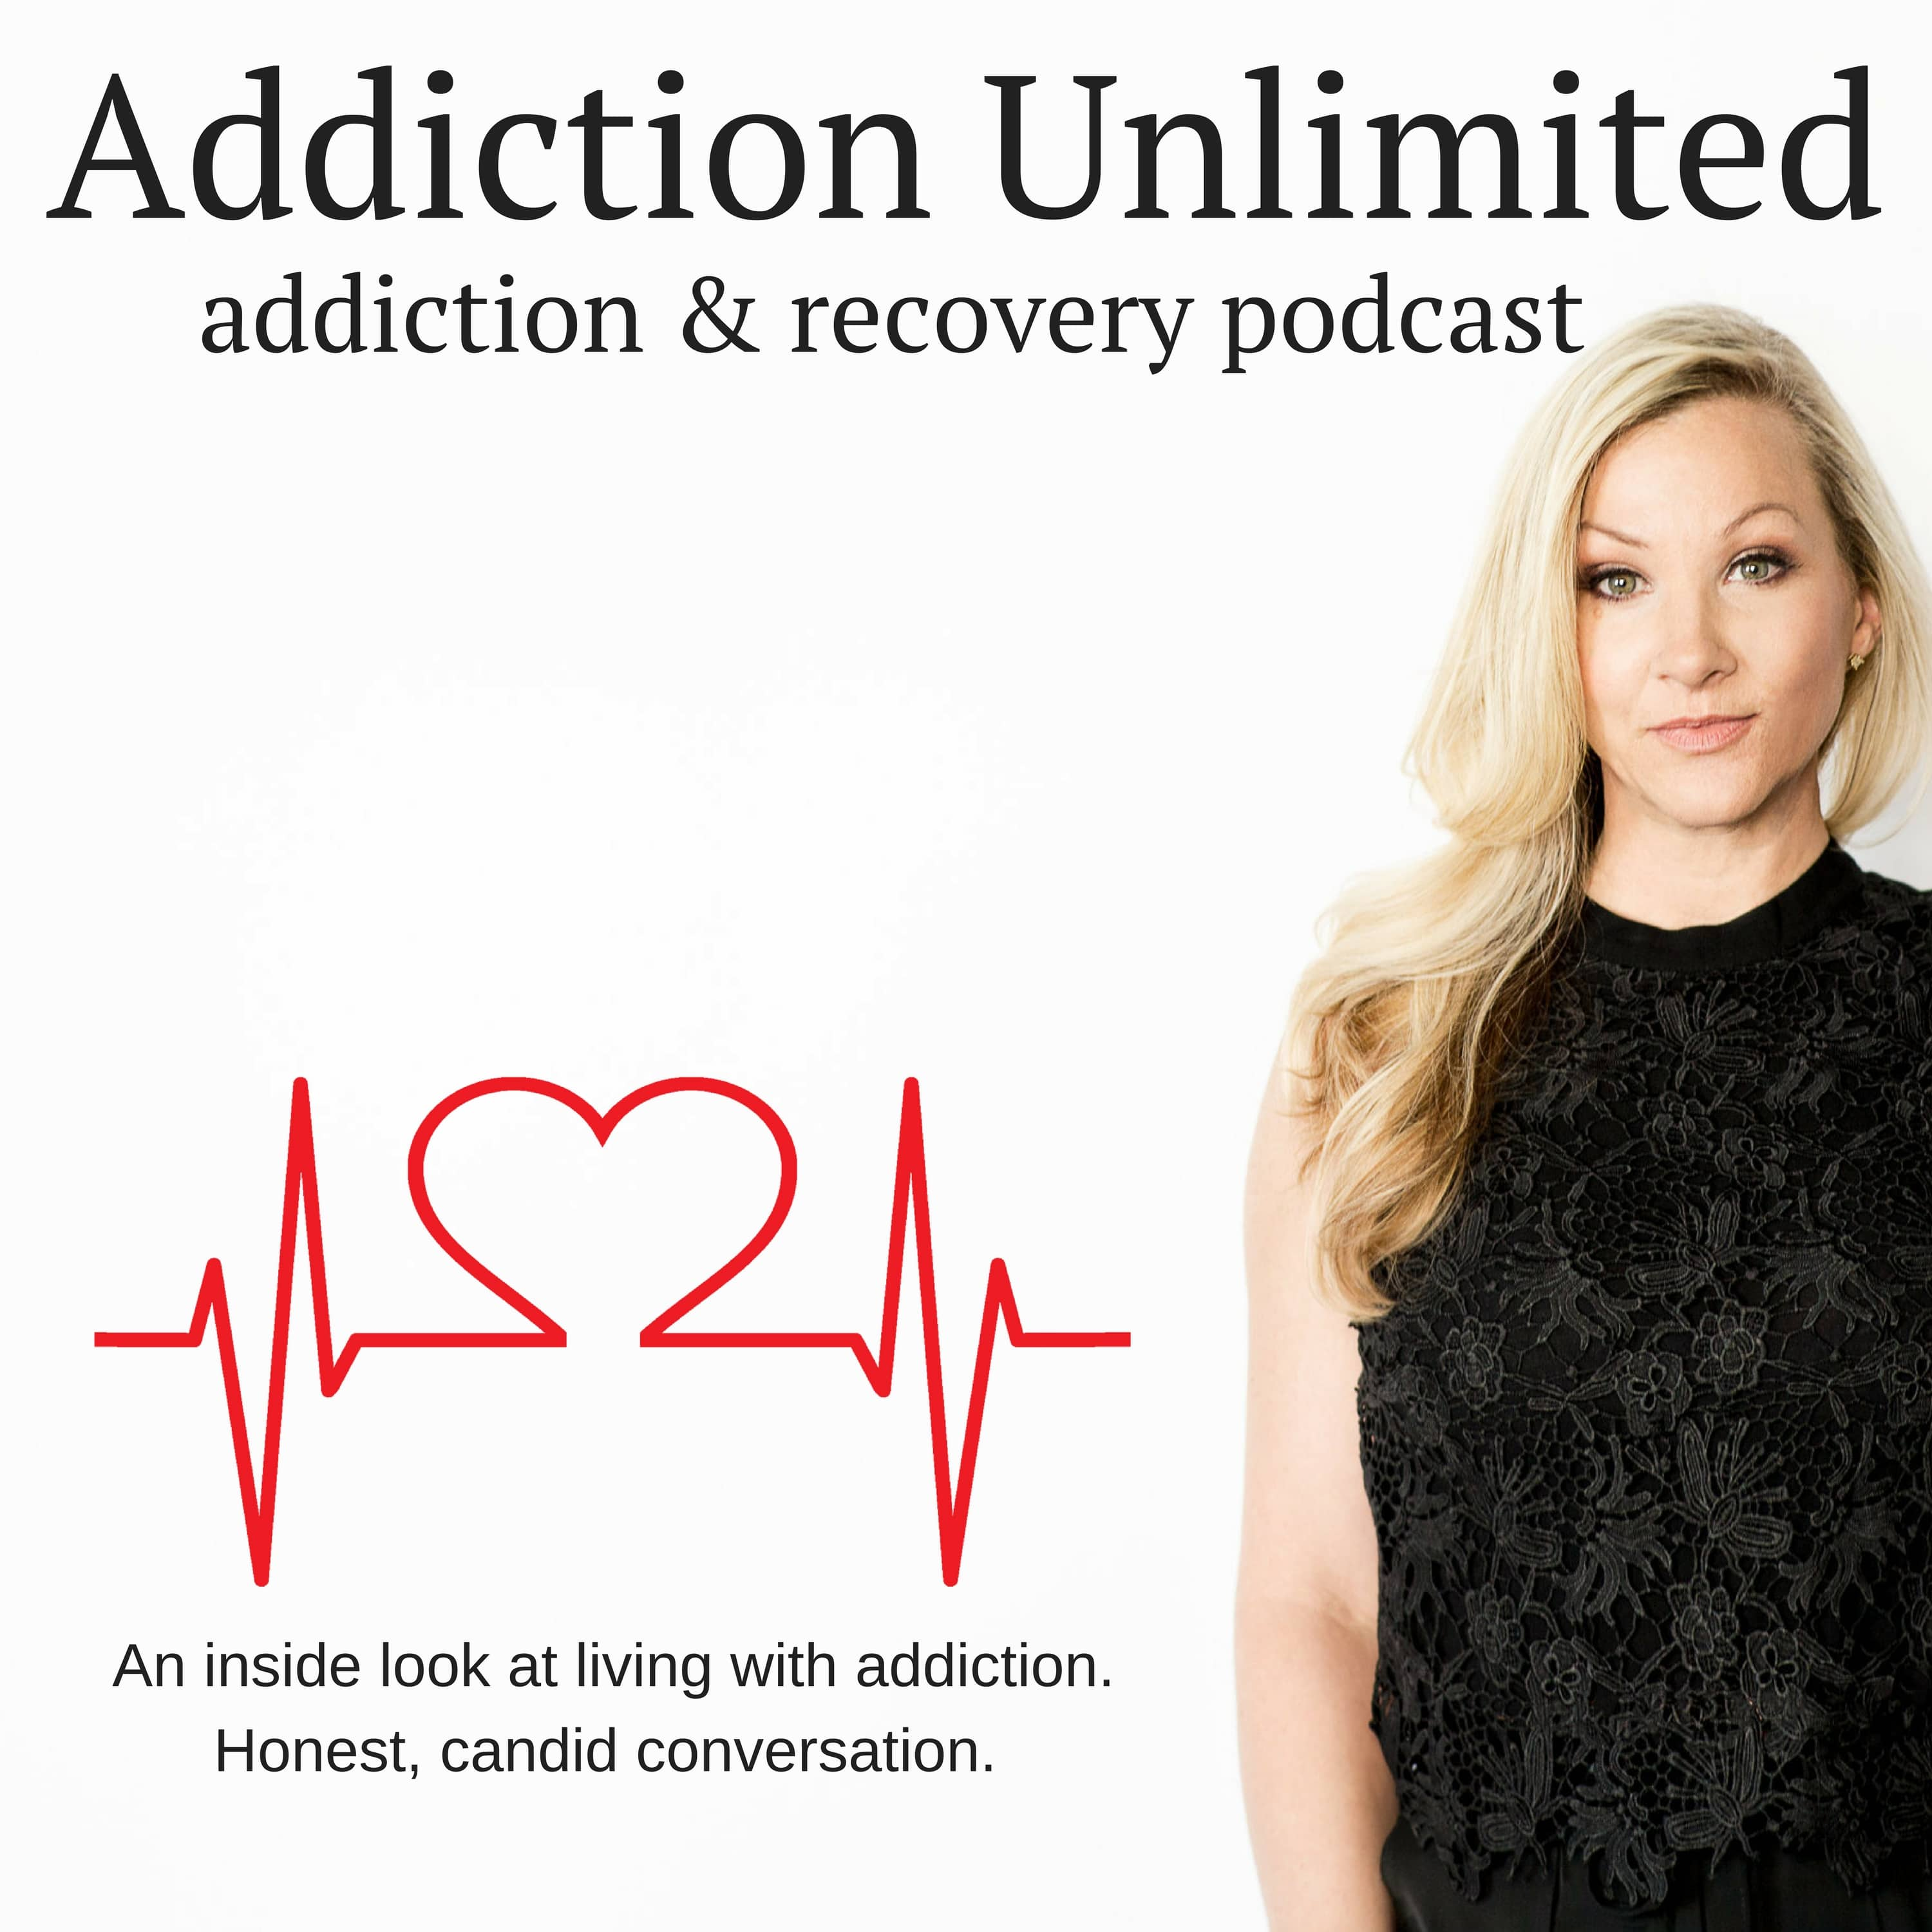 Tricia Lewis from Recovery Happy Hour Podcast